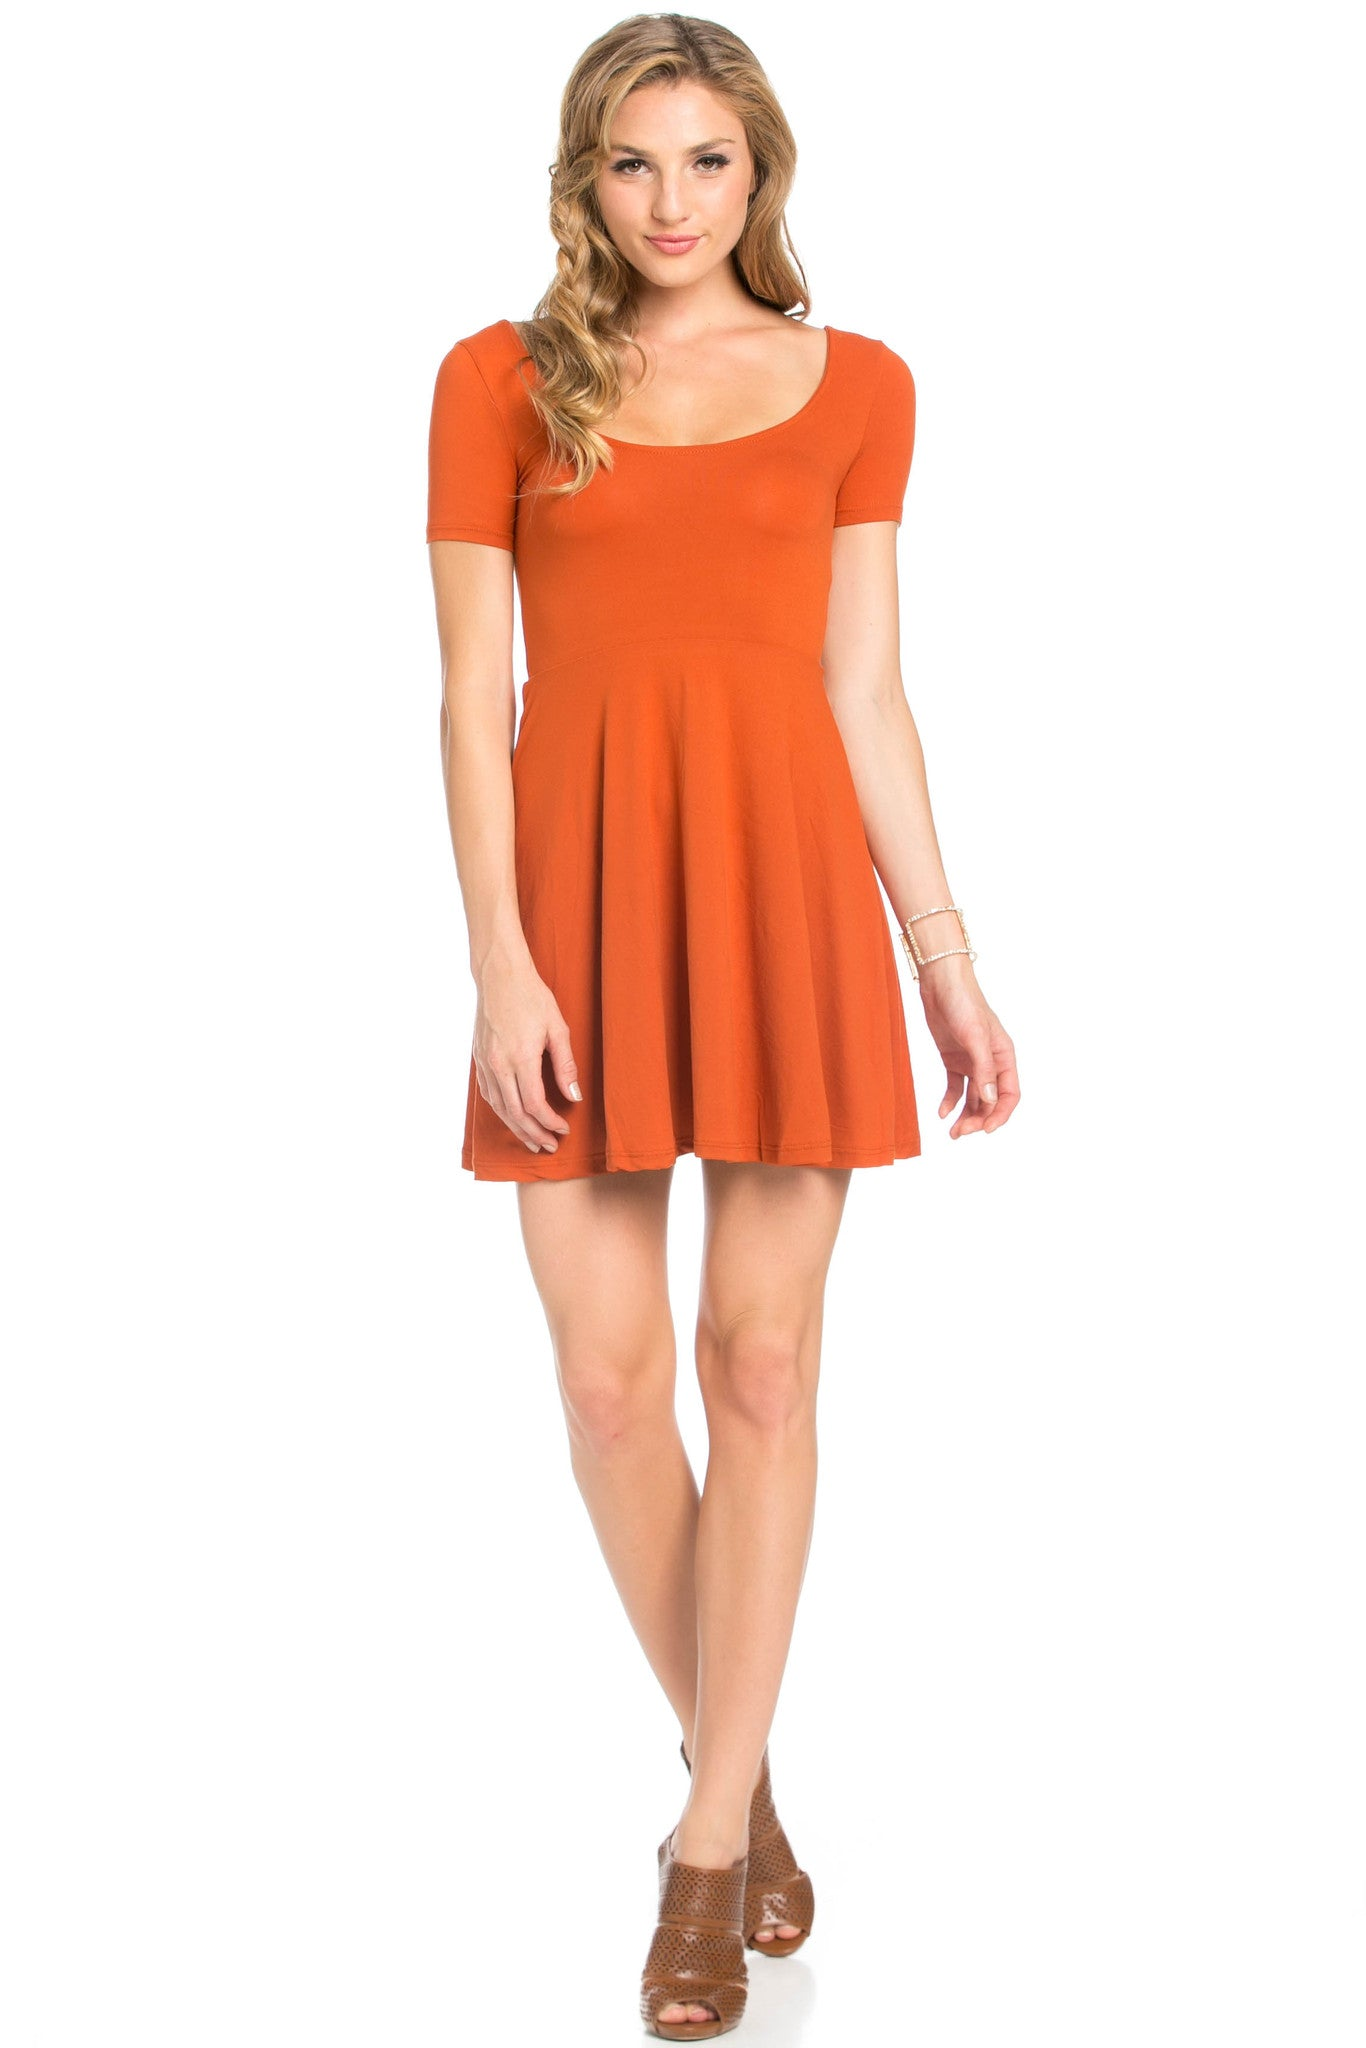 Micro Suede Rust Mini Dress - Dresses - My Yuccie - 5